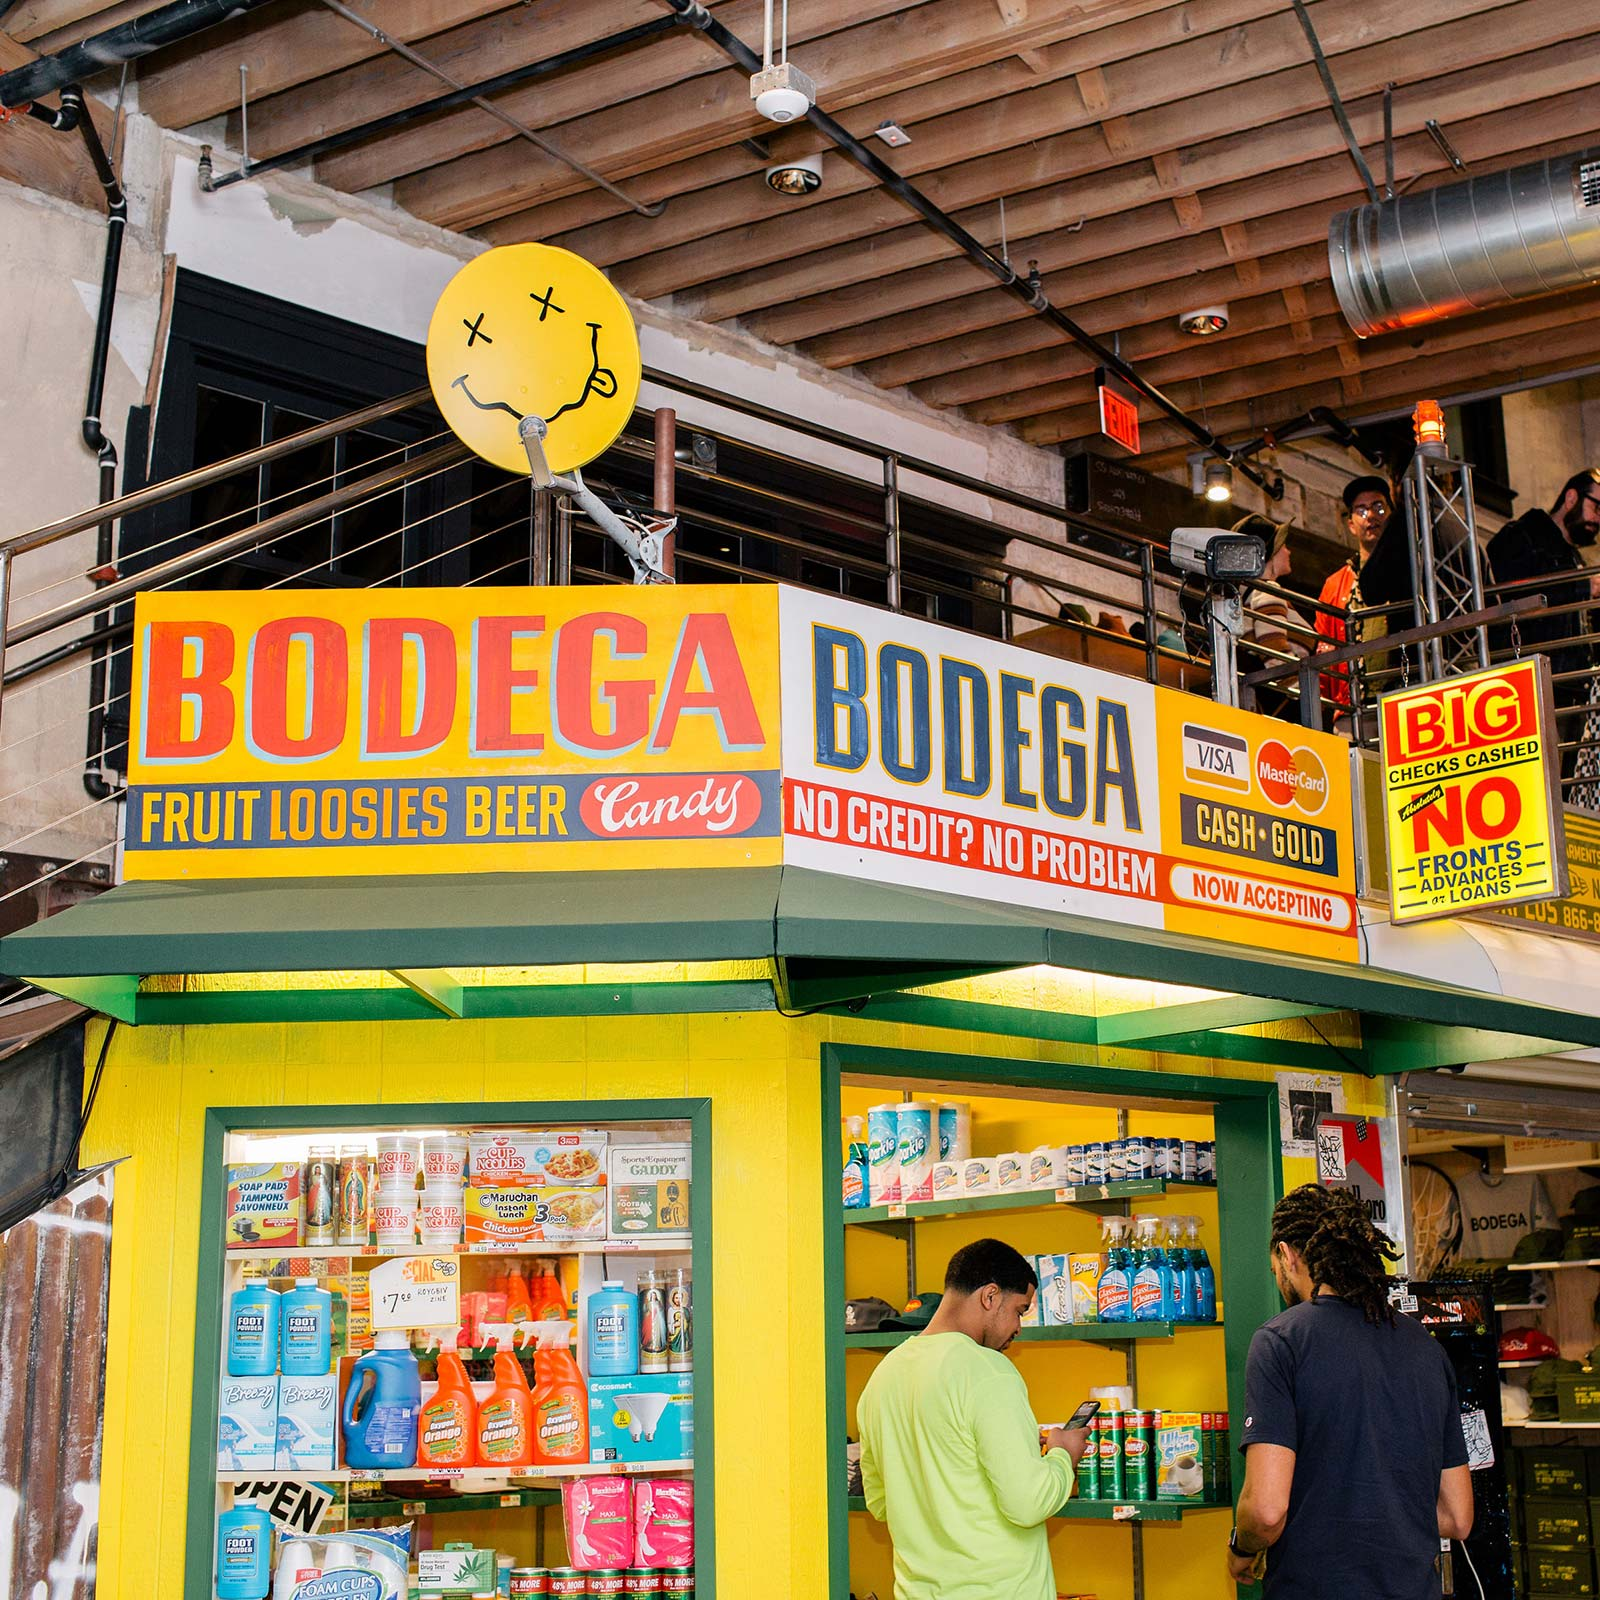 two people standing in front of a store with sign bodega